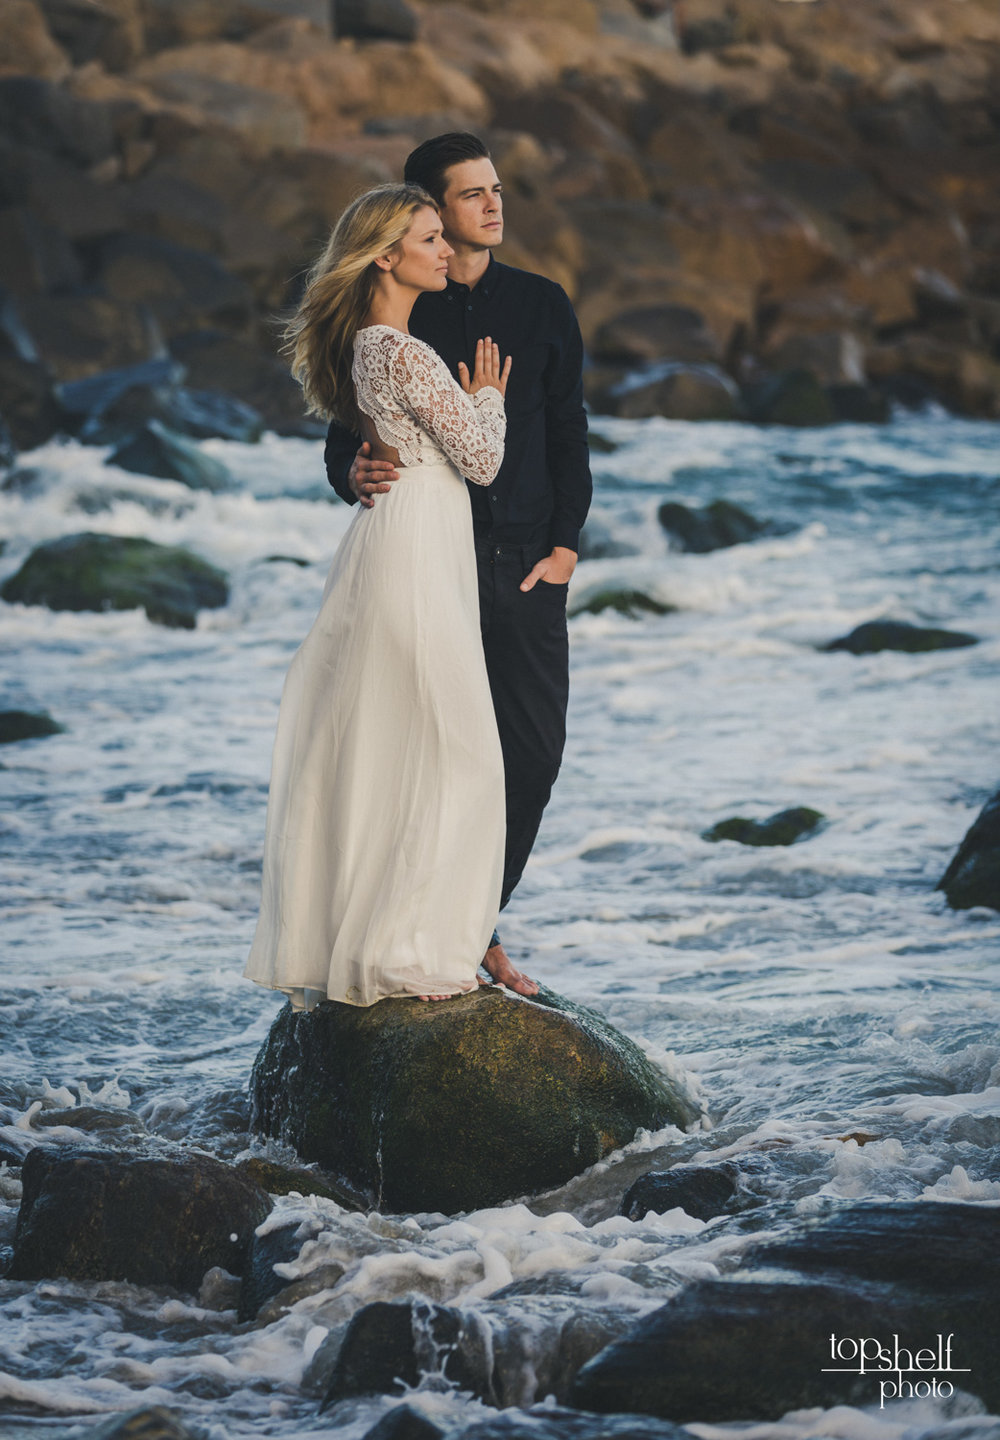 dana-point-beach-san-diego-engagement-top-shelf-photo-5.jpg